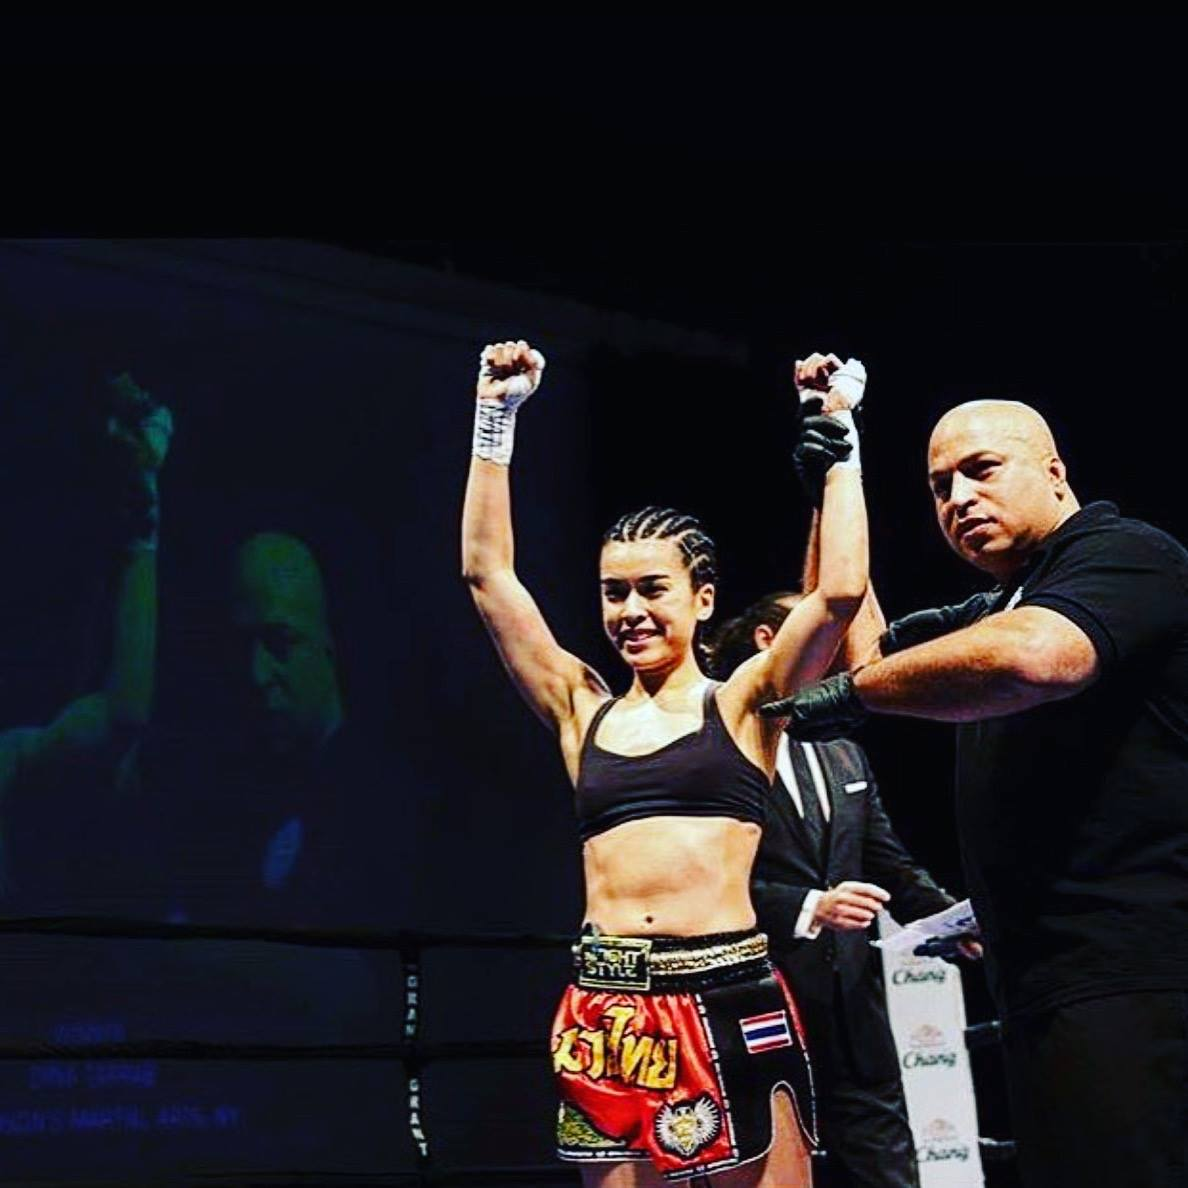 Dina Brings Home A Muay Thai Win For Anderson's Martial Arts Academy